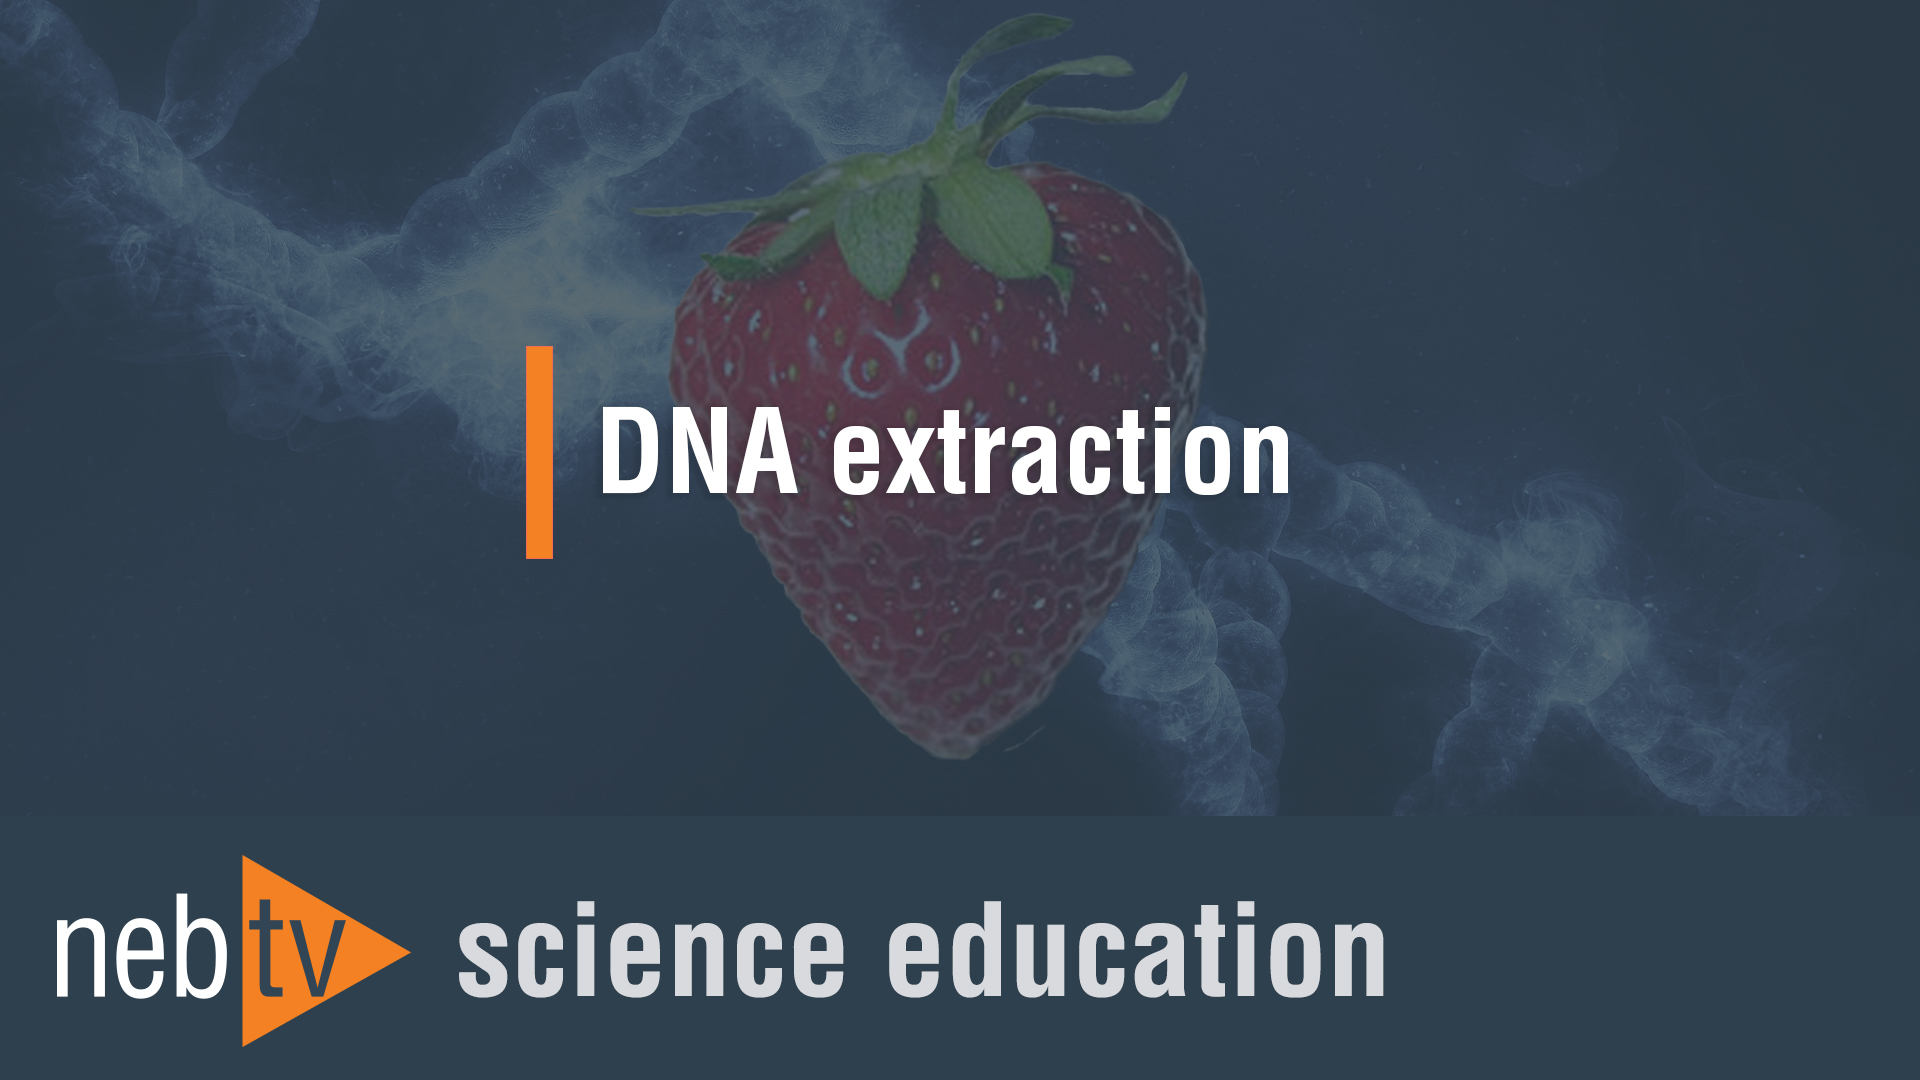 NEBTV_SciEdu_DNA-extraction_1920